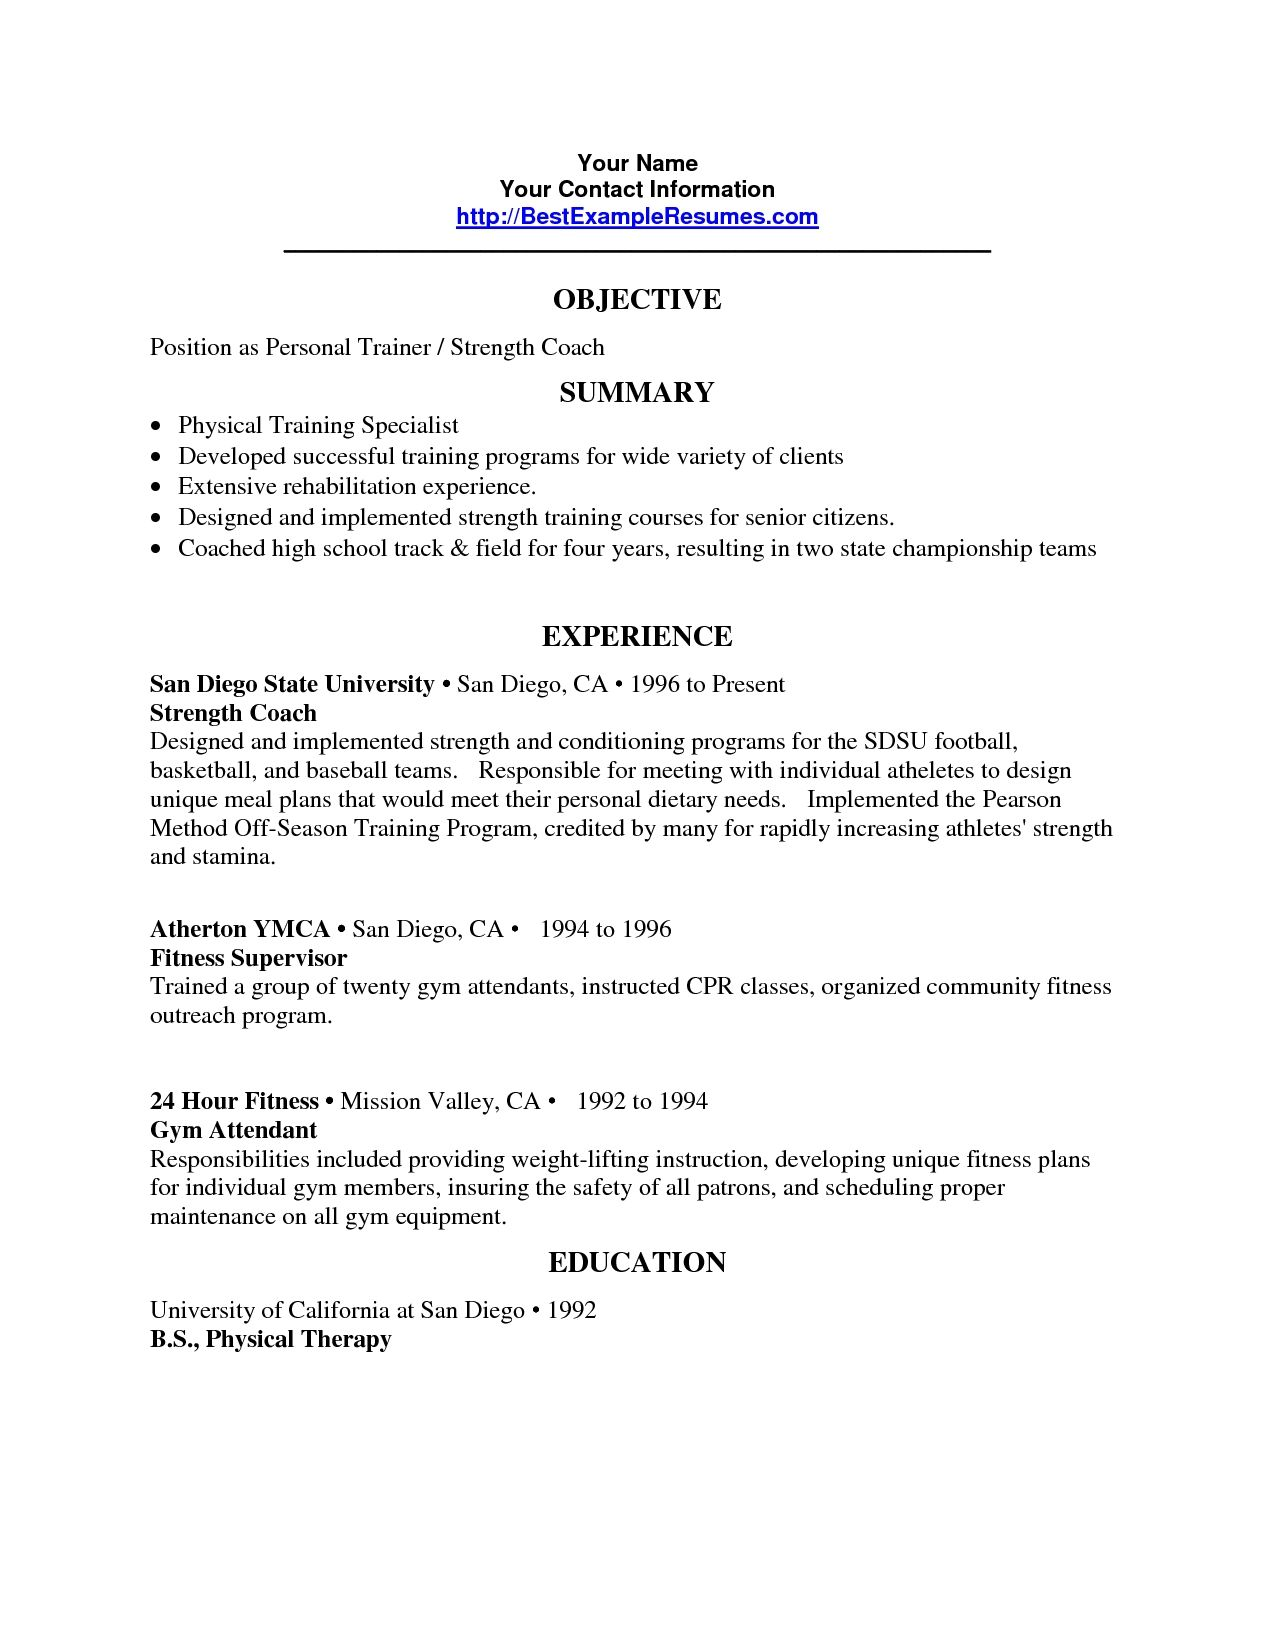 personal trainer resume objective sample gallery photos job samples for gym procter and Resume Resume Objective For Gym Job